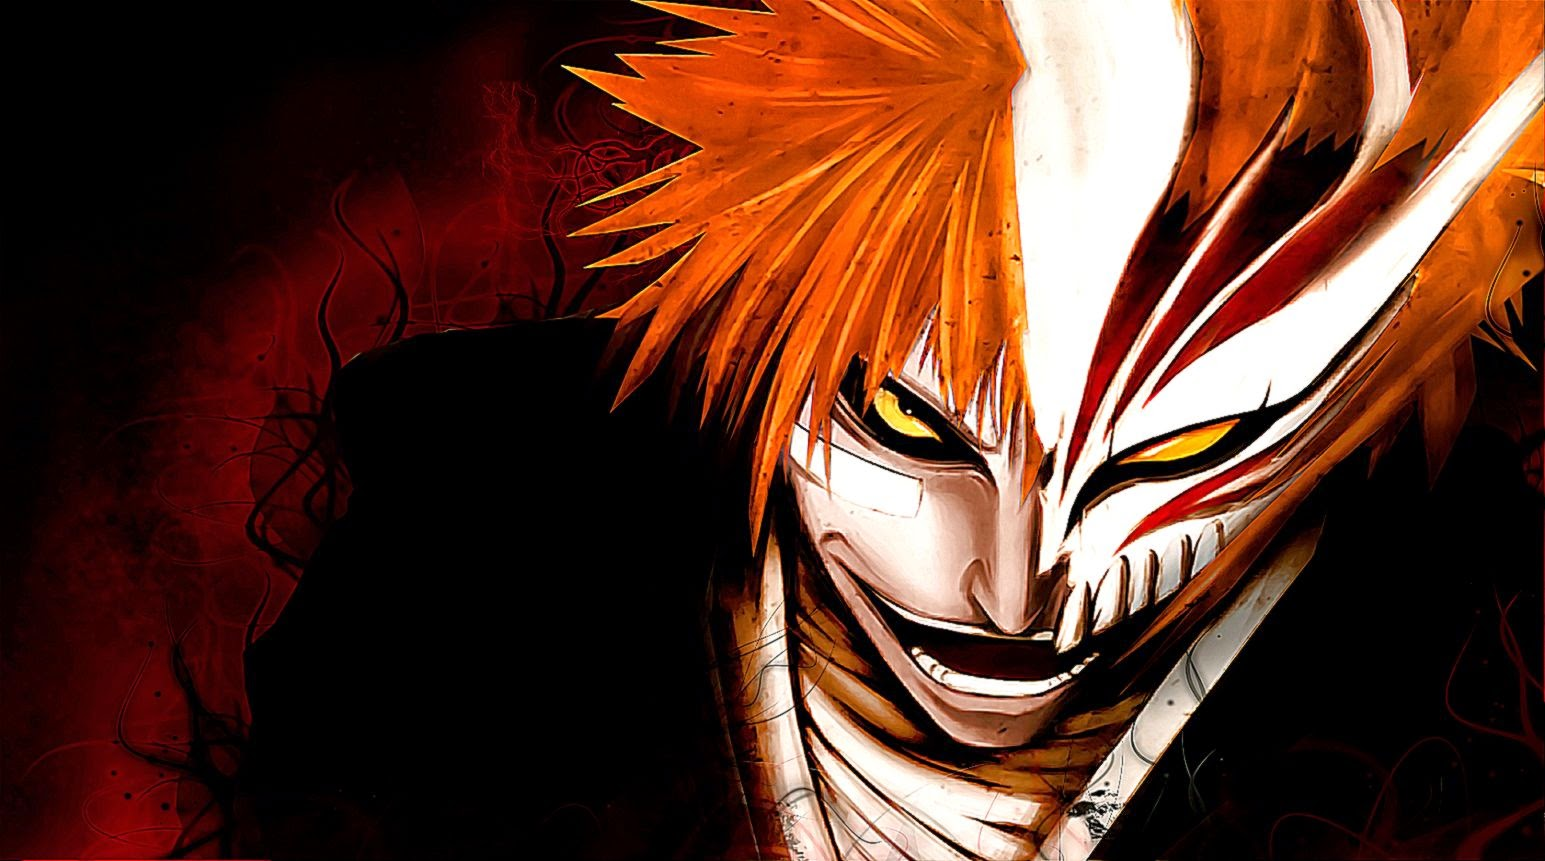 Hollow Ichigo Hd Wallpaper | Best Wallpapers